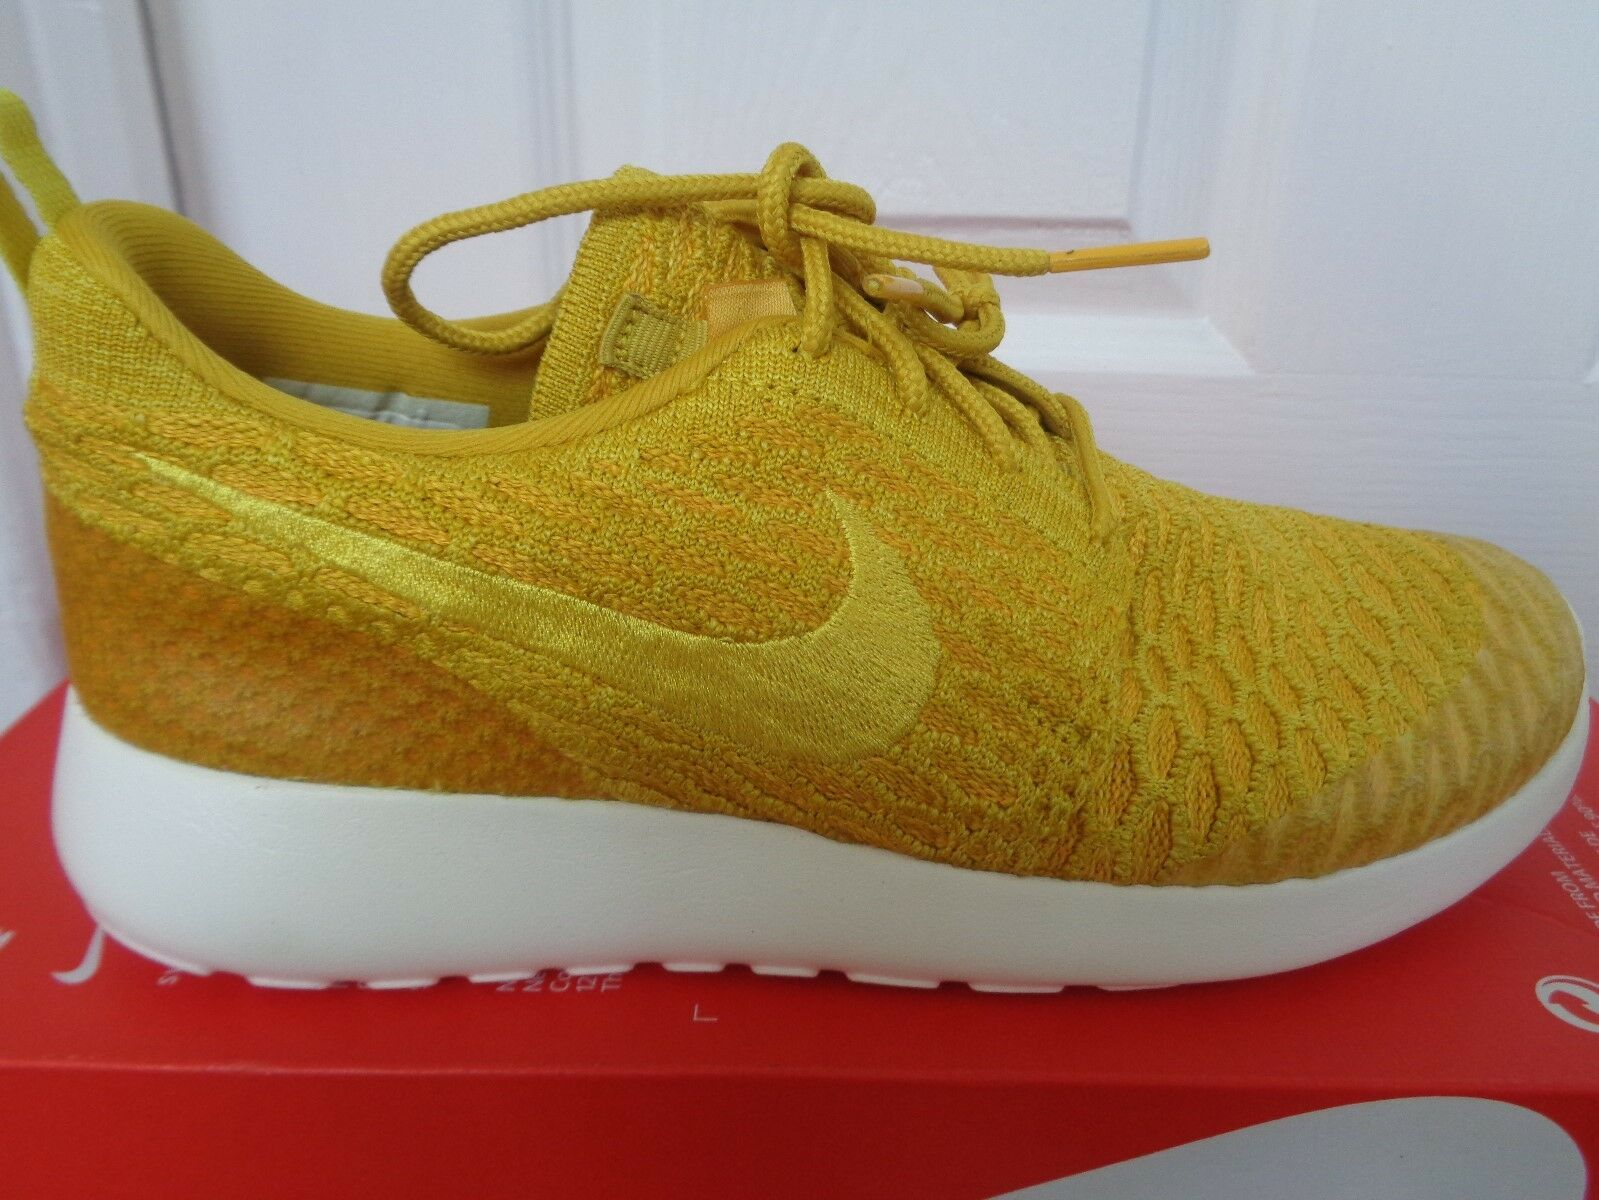 Nike Roshe one Flyknit wmns trainers sneakers 704927 701 uk 7.5 5 eu 38.5 us 7.5 uk NEW f7df7c